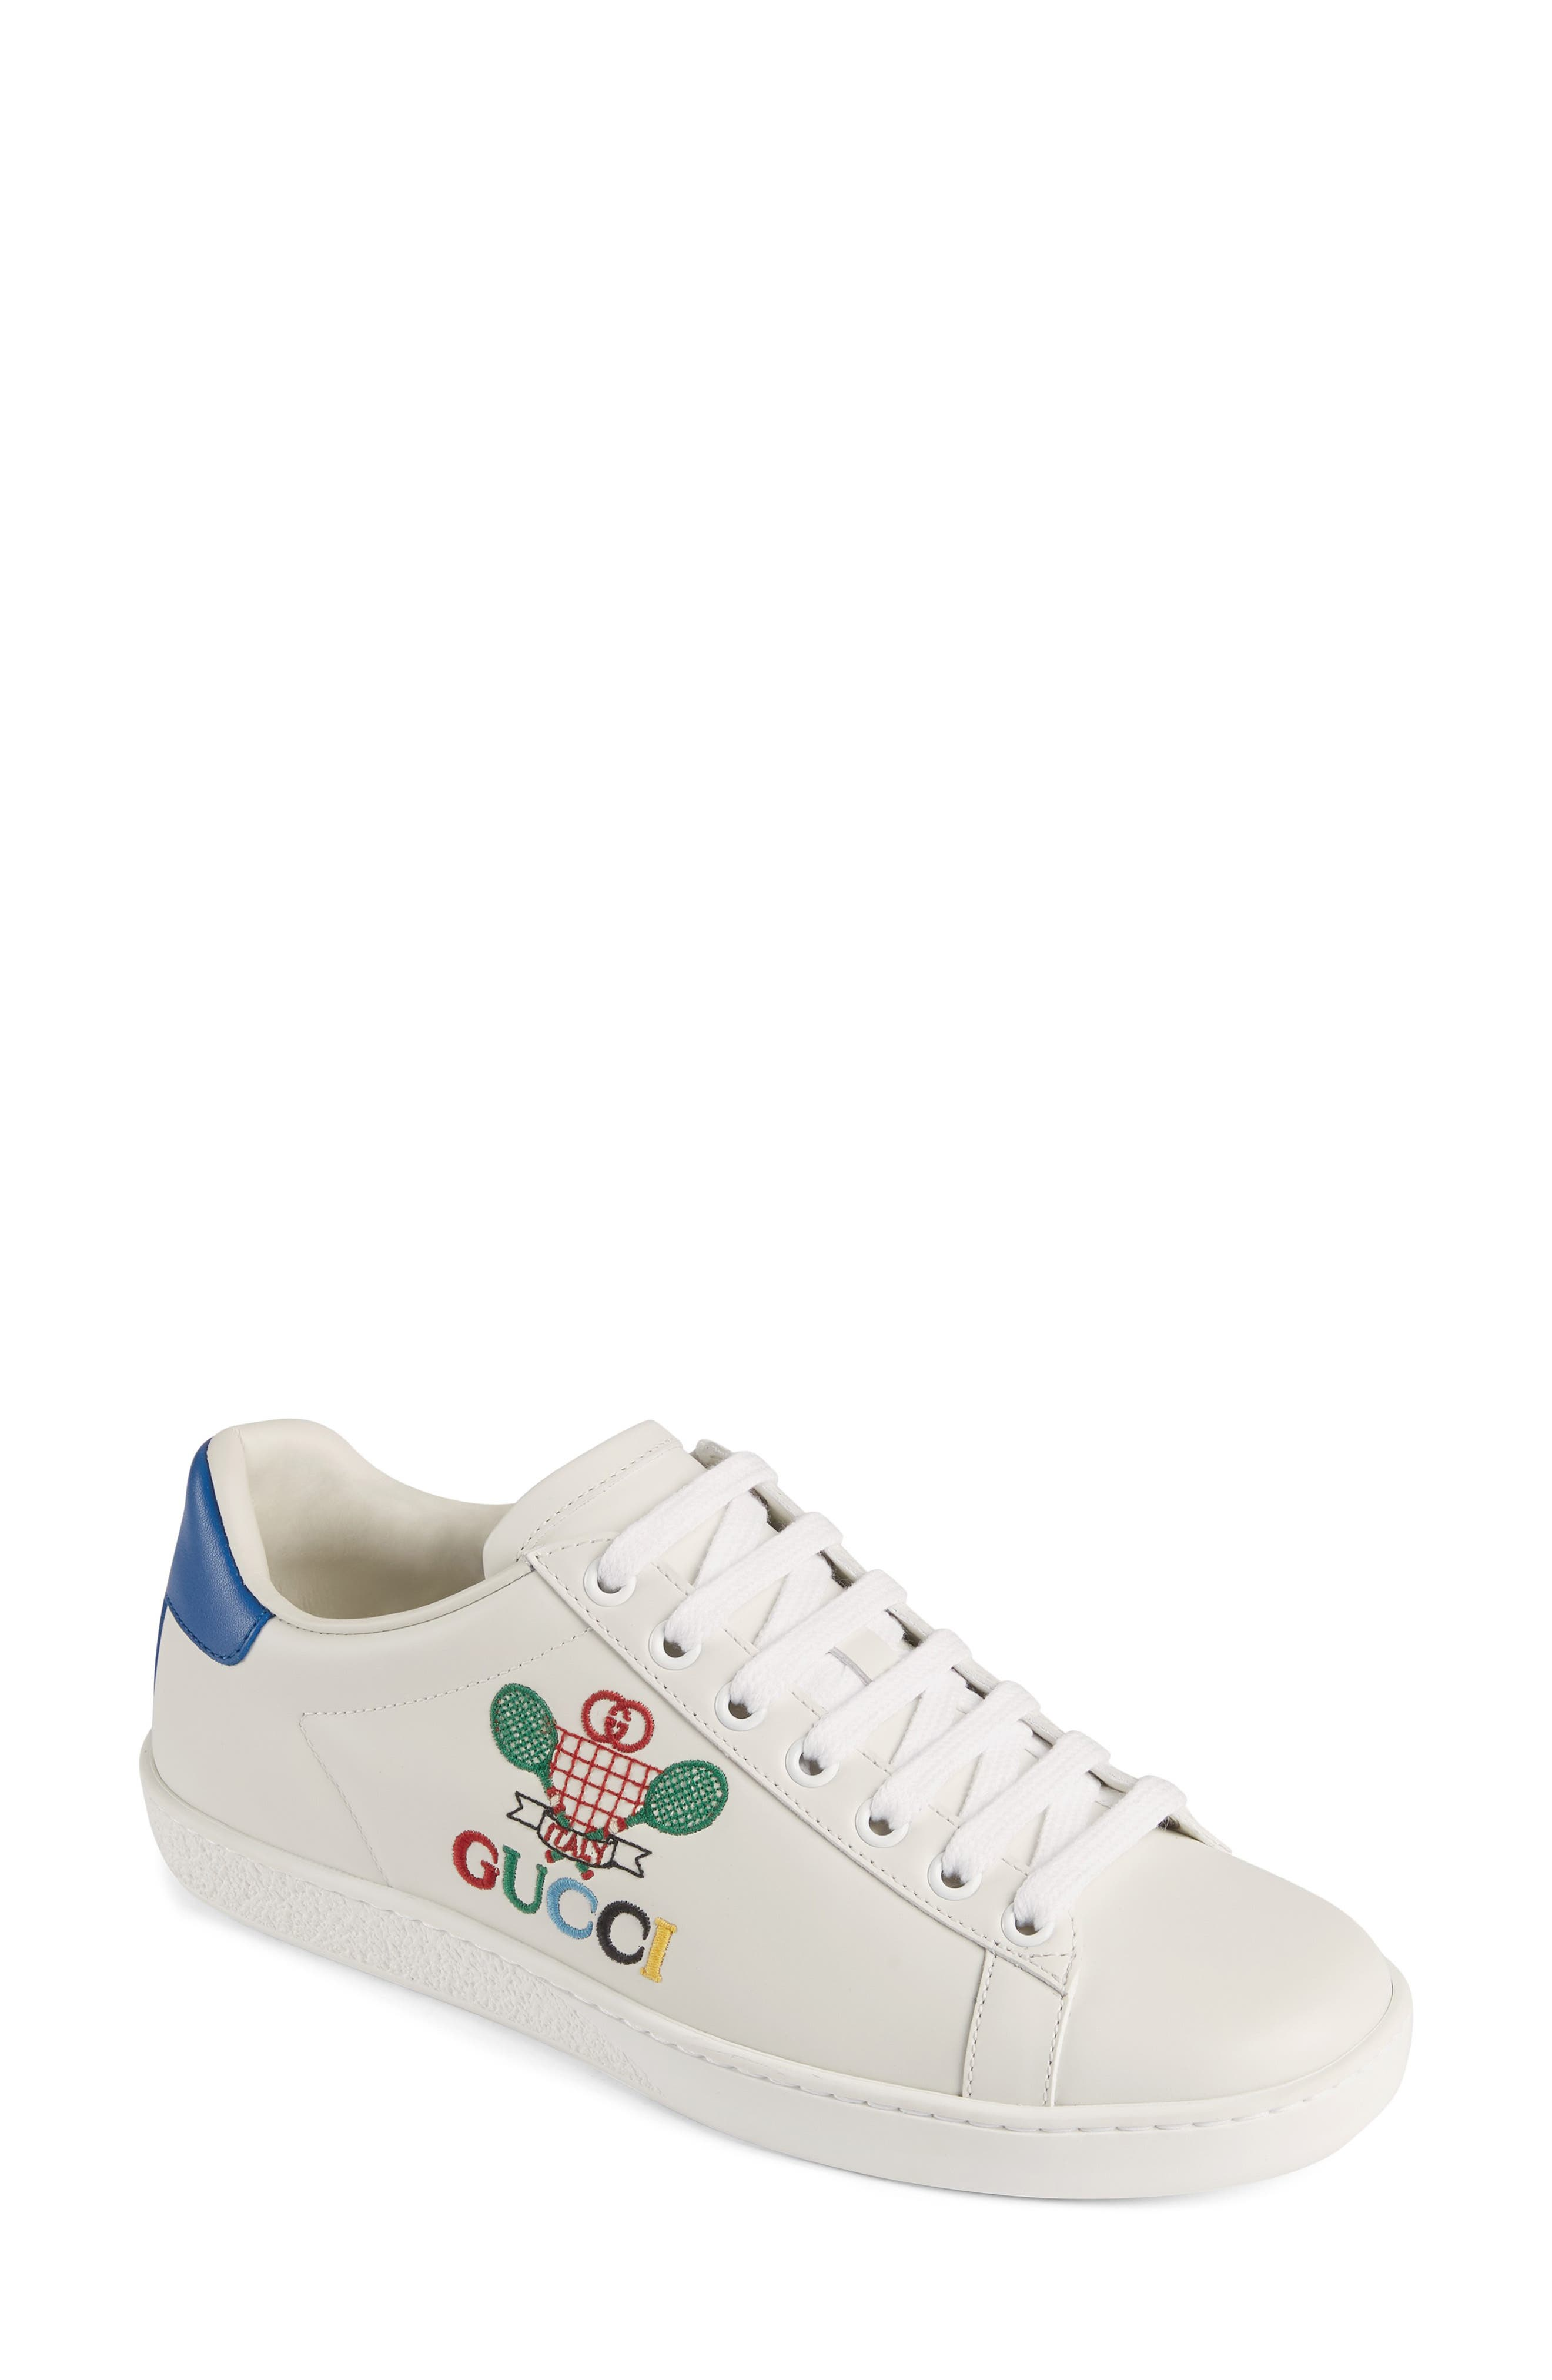 Gucci New Ace Embroidered Tennis